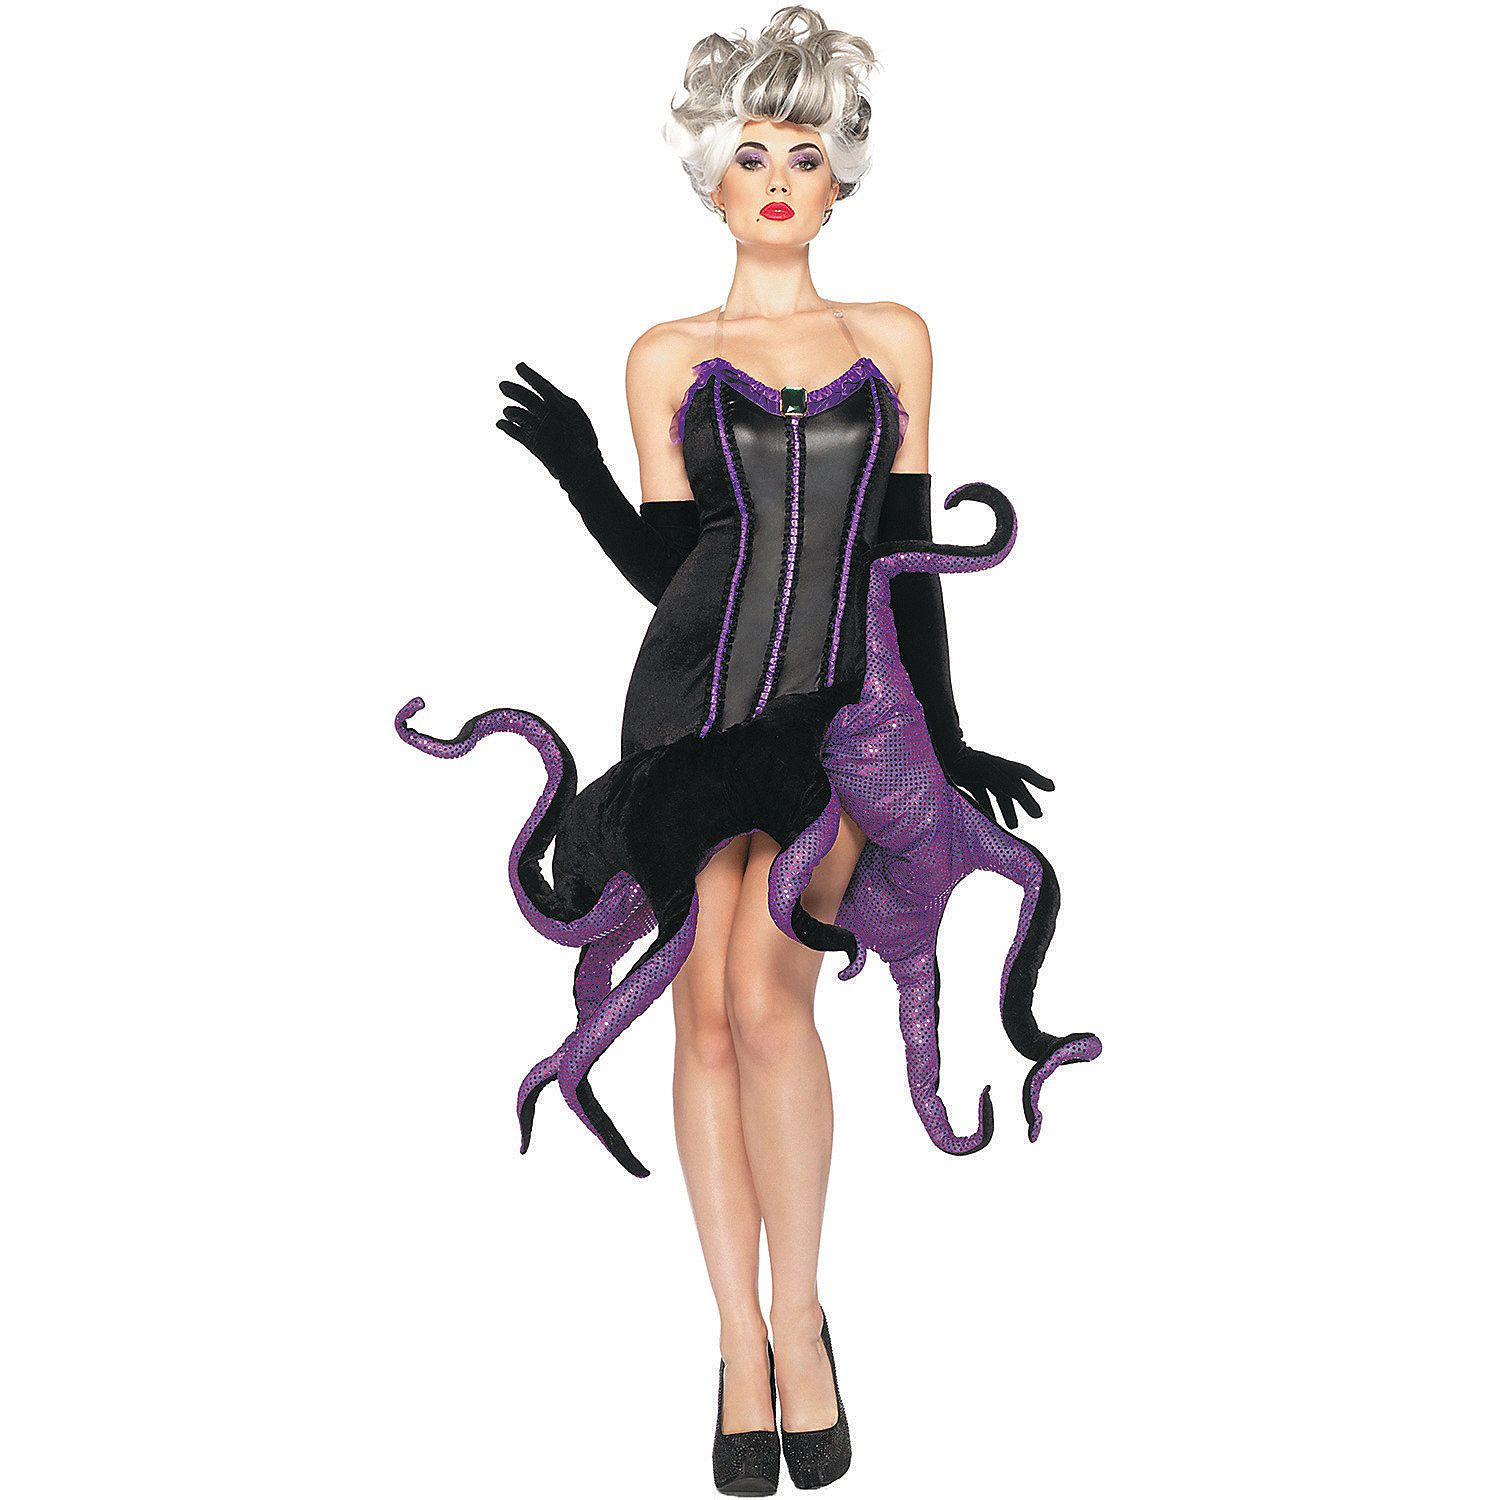 Ursula costume for women orientaltrading halloween ursula costume for women orientaltrading solutioingenieria Gallery